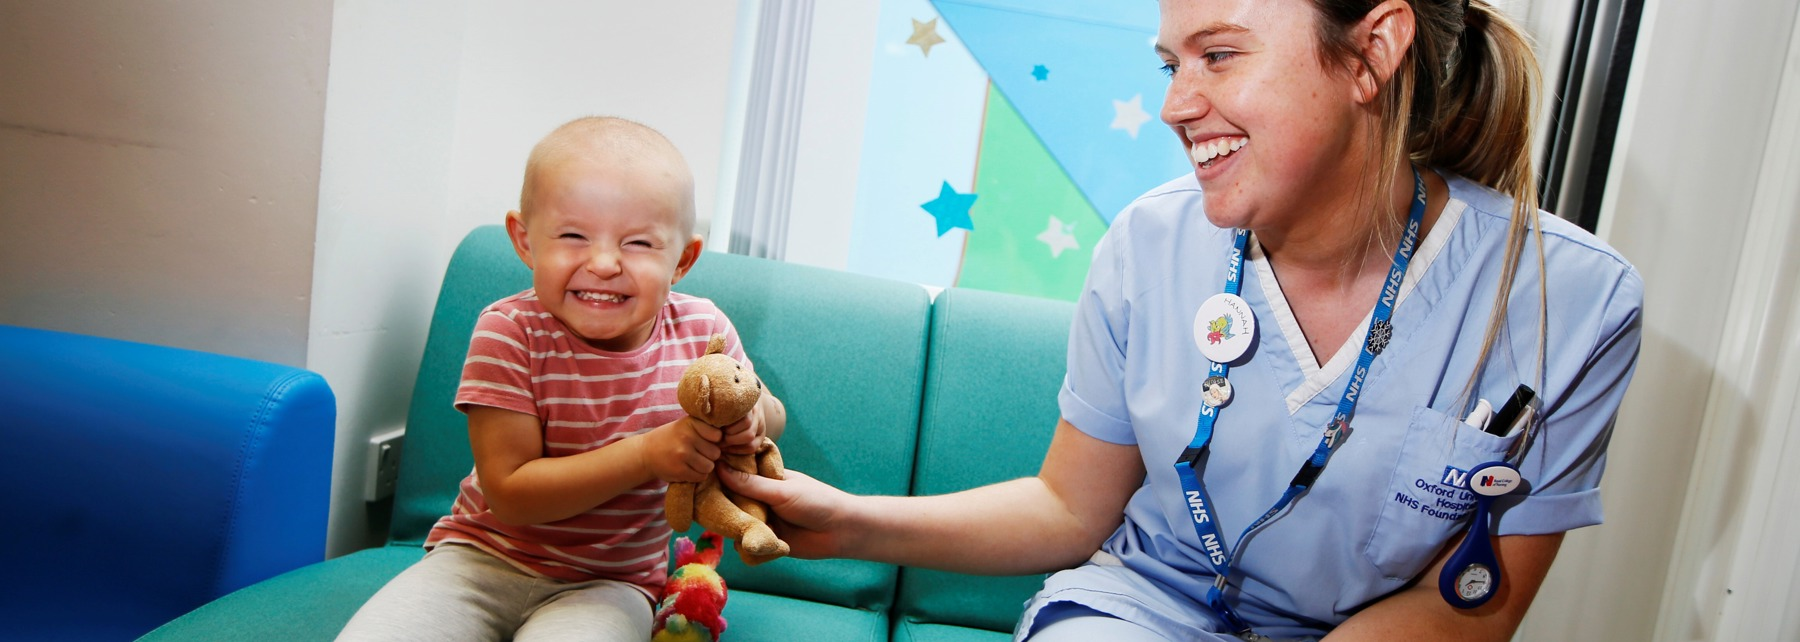 Donate to Oxford Children's Hospital